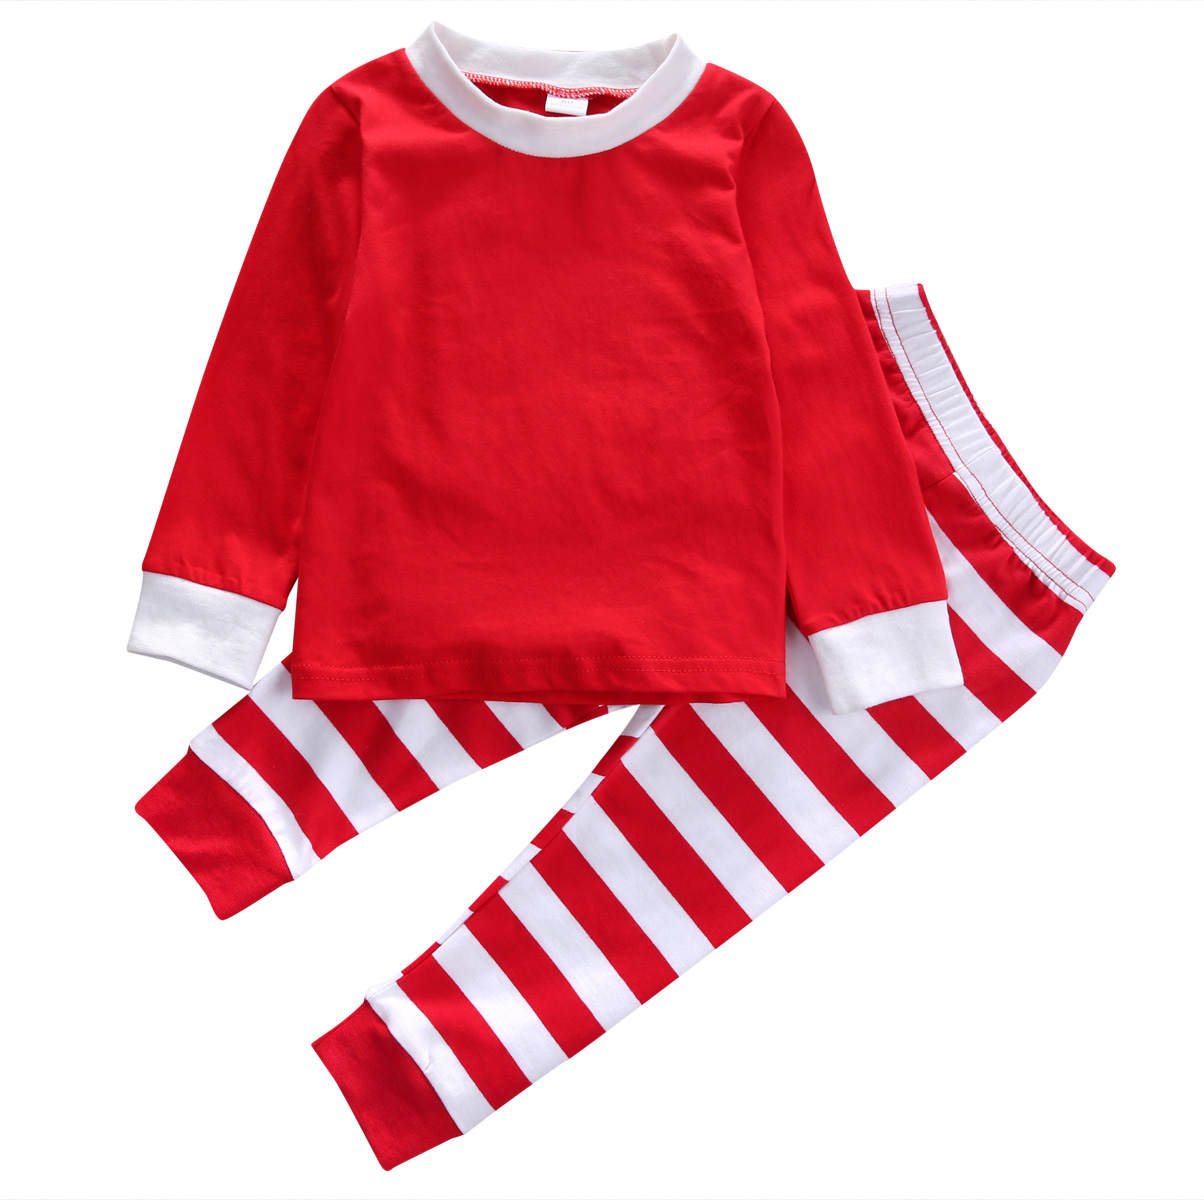 spring autumn kids clothes sets baby boys girls christmas sleepwear children pajamas sets 1 6years outfits in pajama sets from mother kids on - Christmas Pjs Toddler